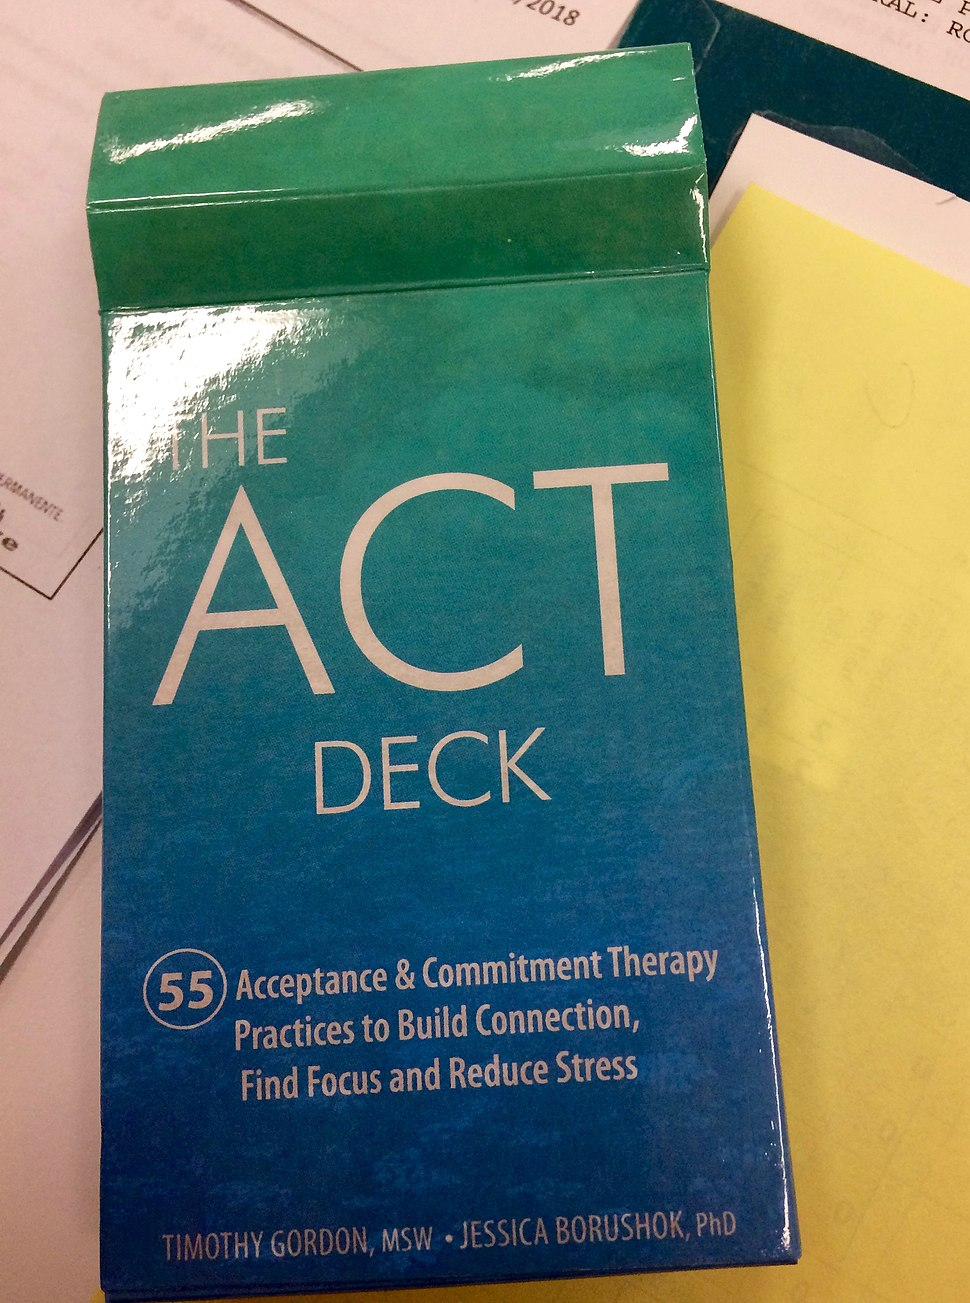 Cards used as a therapeutic activity in ACT treatment